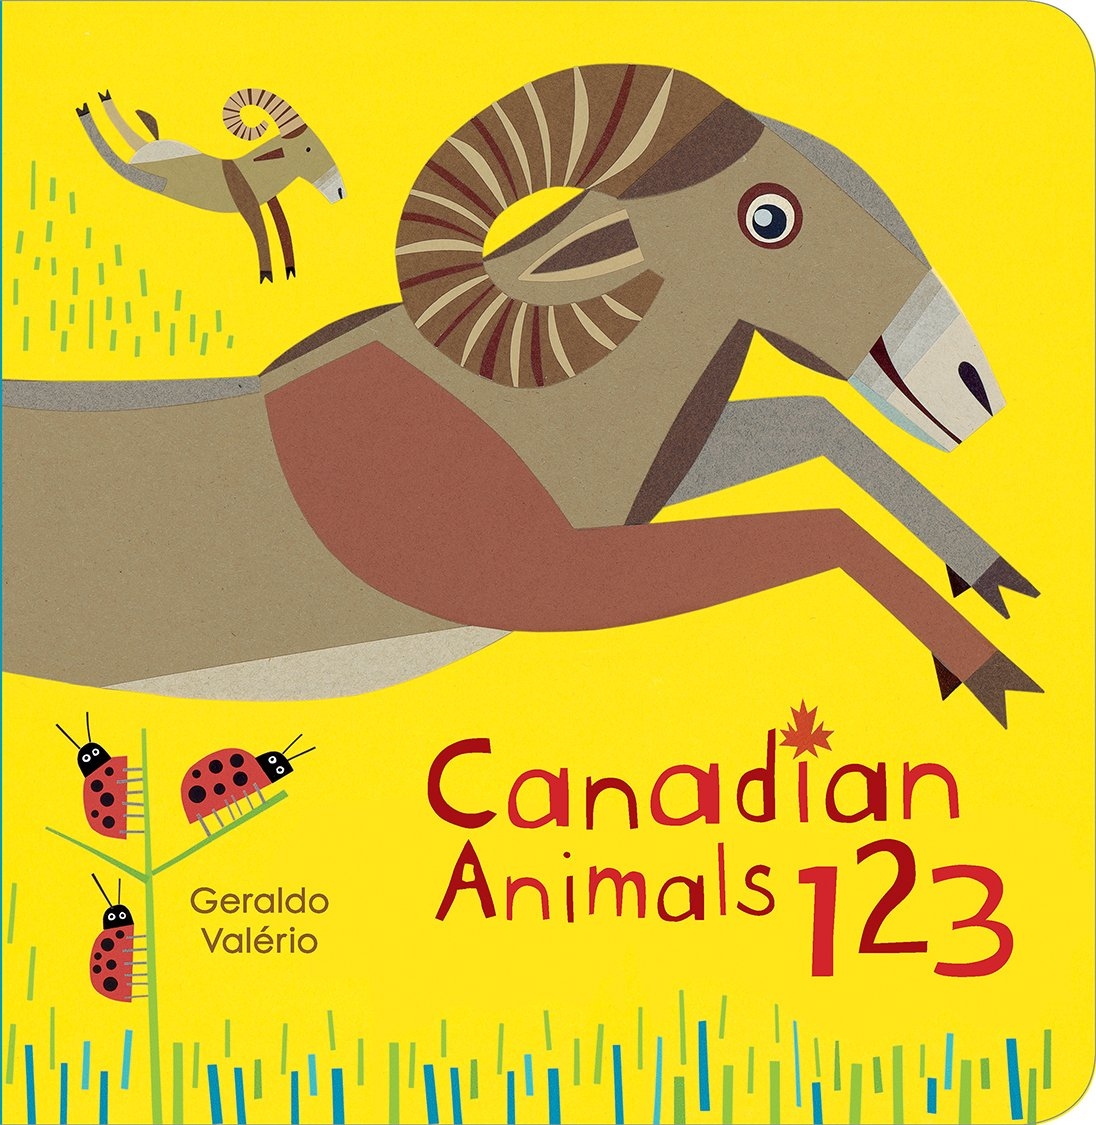 Canadian Animals 123 (Canadian Concepts)